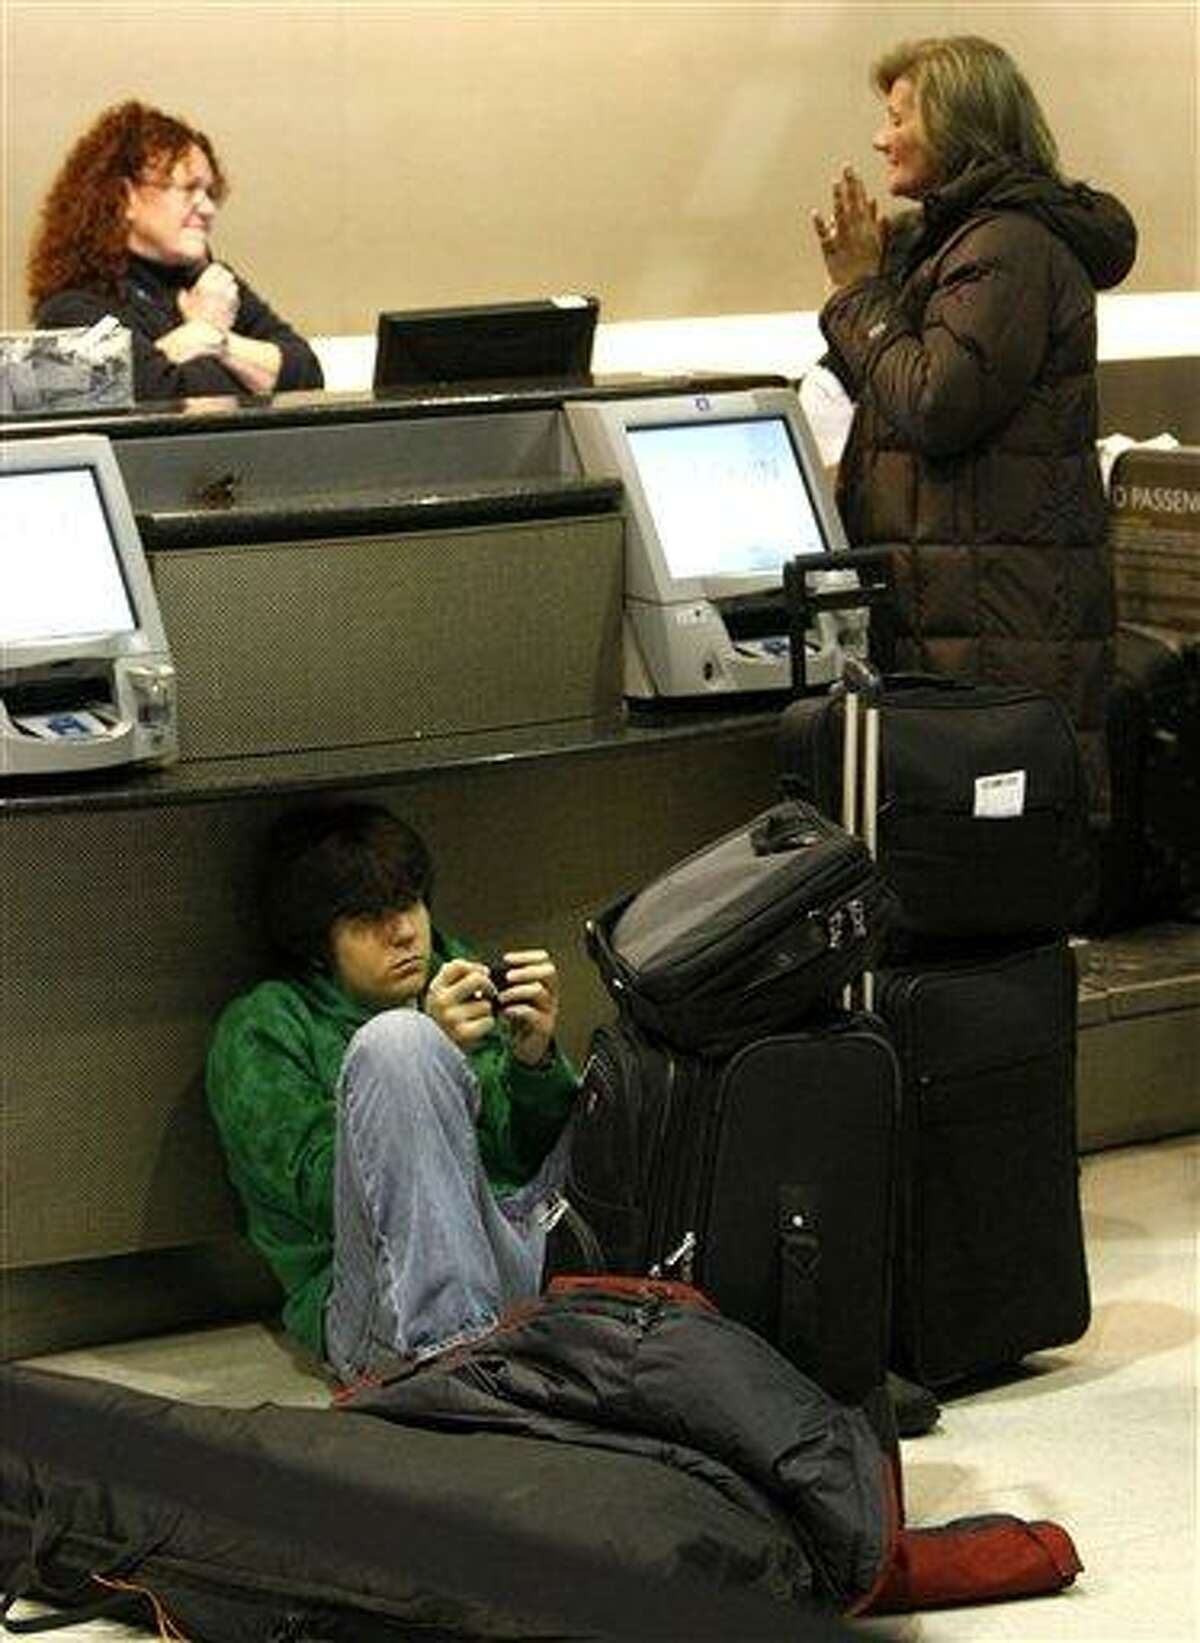 Daniel Larson sits on the floor as his mother Nancy, right, talks with a ticketing agent at the Delta Airlines counter in the Detroit Metropolitan Airport, Sunday, Dec. 27, 2009 in Romulas, Mich. The U.S. government tightened airline security as it searches for answers to how a 23-year-old Nigerian man eluded extensive systems intended to prevent attacks like his botched Christmas Day effort to blow up a Northwest flight from overseas. (AP Photo/Charles Rex Arbogast)